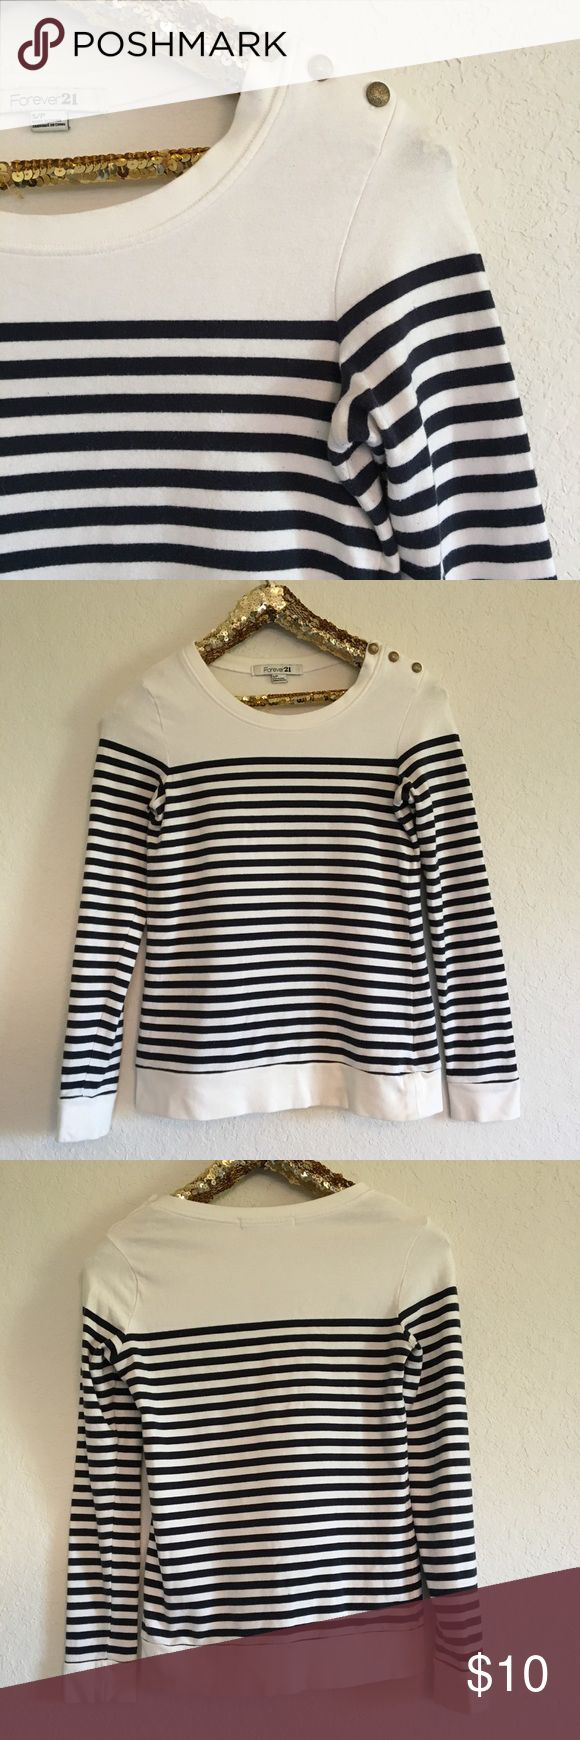 Forever 21 Striped Long Sleeve Top This Forever 21 navy striped top is in good used condition and perfect for the fall season! It's so soft and very comfortable!  🚭 From a smoke-free home ❌ No trades or off PoshMark sales 🛍 Bundles welcome and encouraged 👌🏻 Reasonable offers welcome ⚡️ Same/next day shipping 🌬 All items are steamed before shipping Forever 21 Tops Tees - Long Sleeve